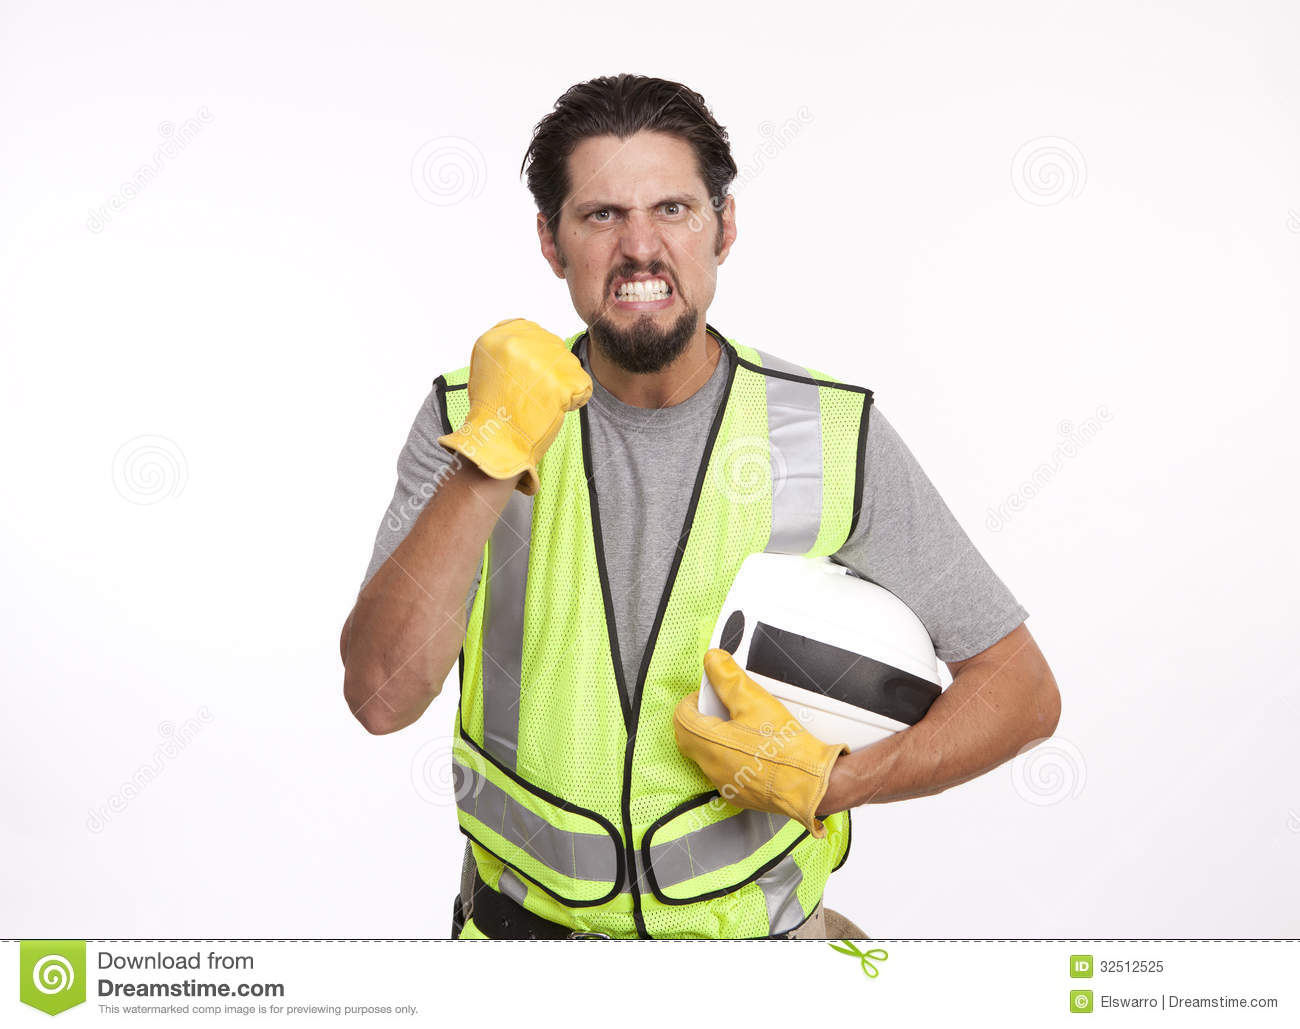 angry worker clipart - photo #29